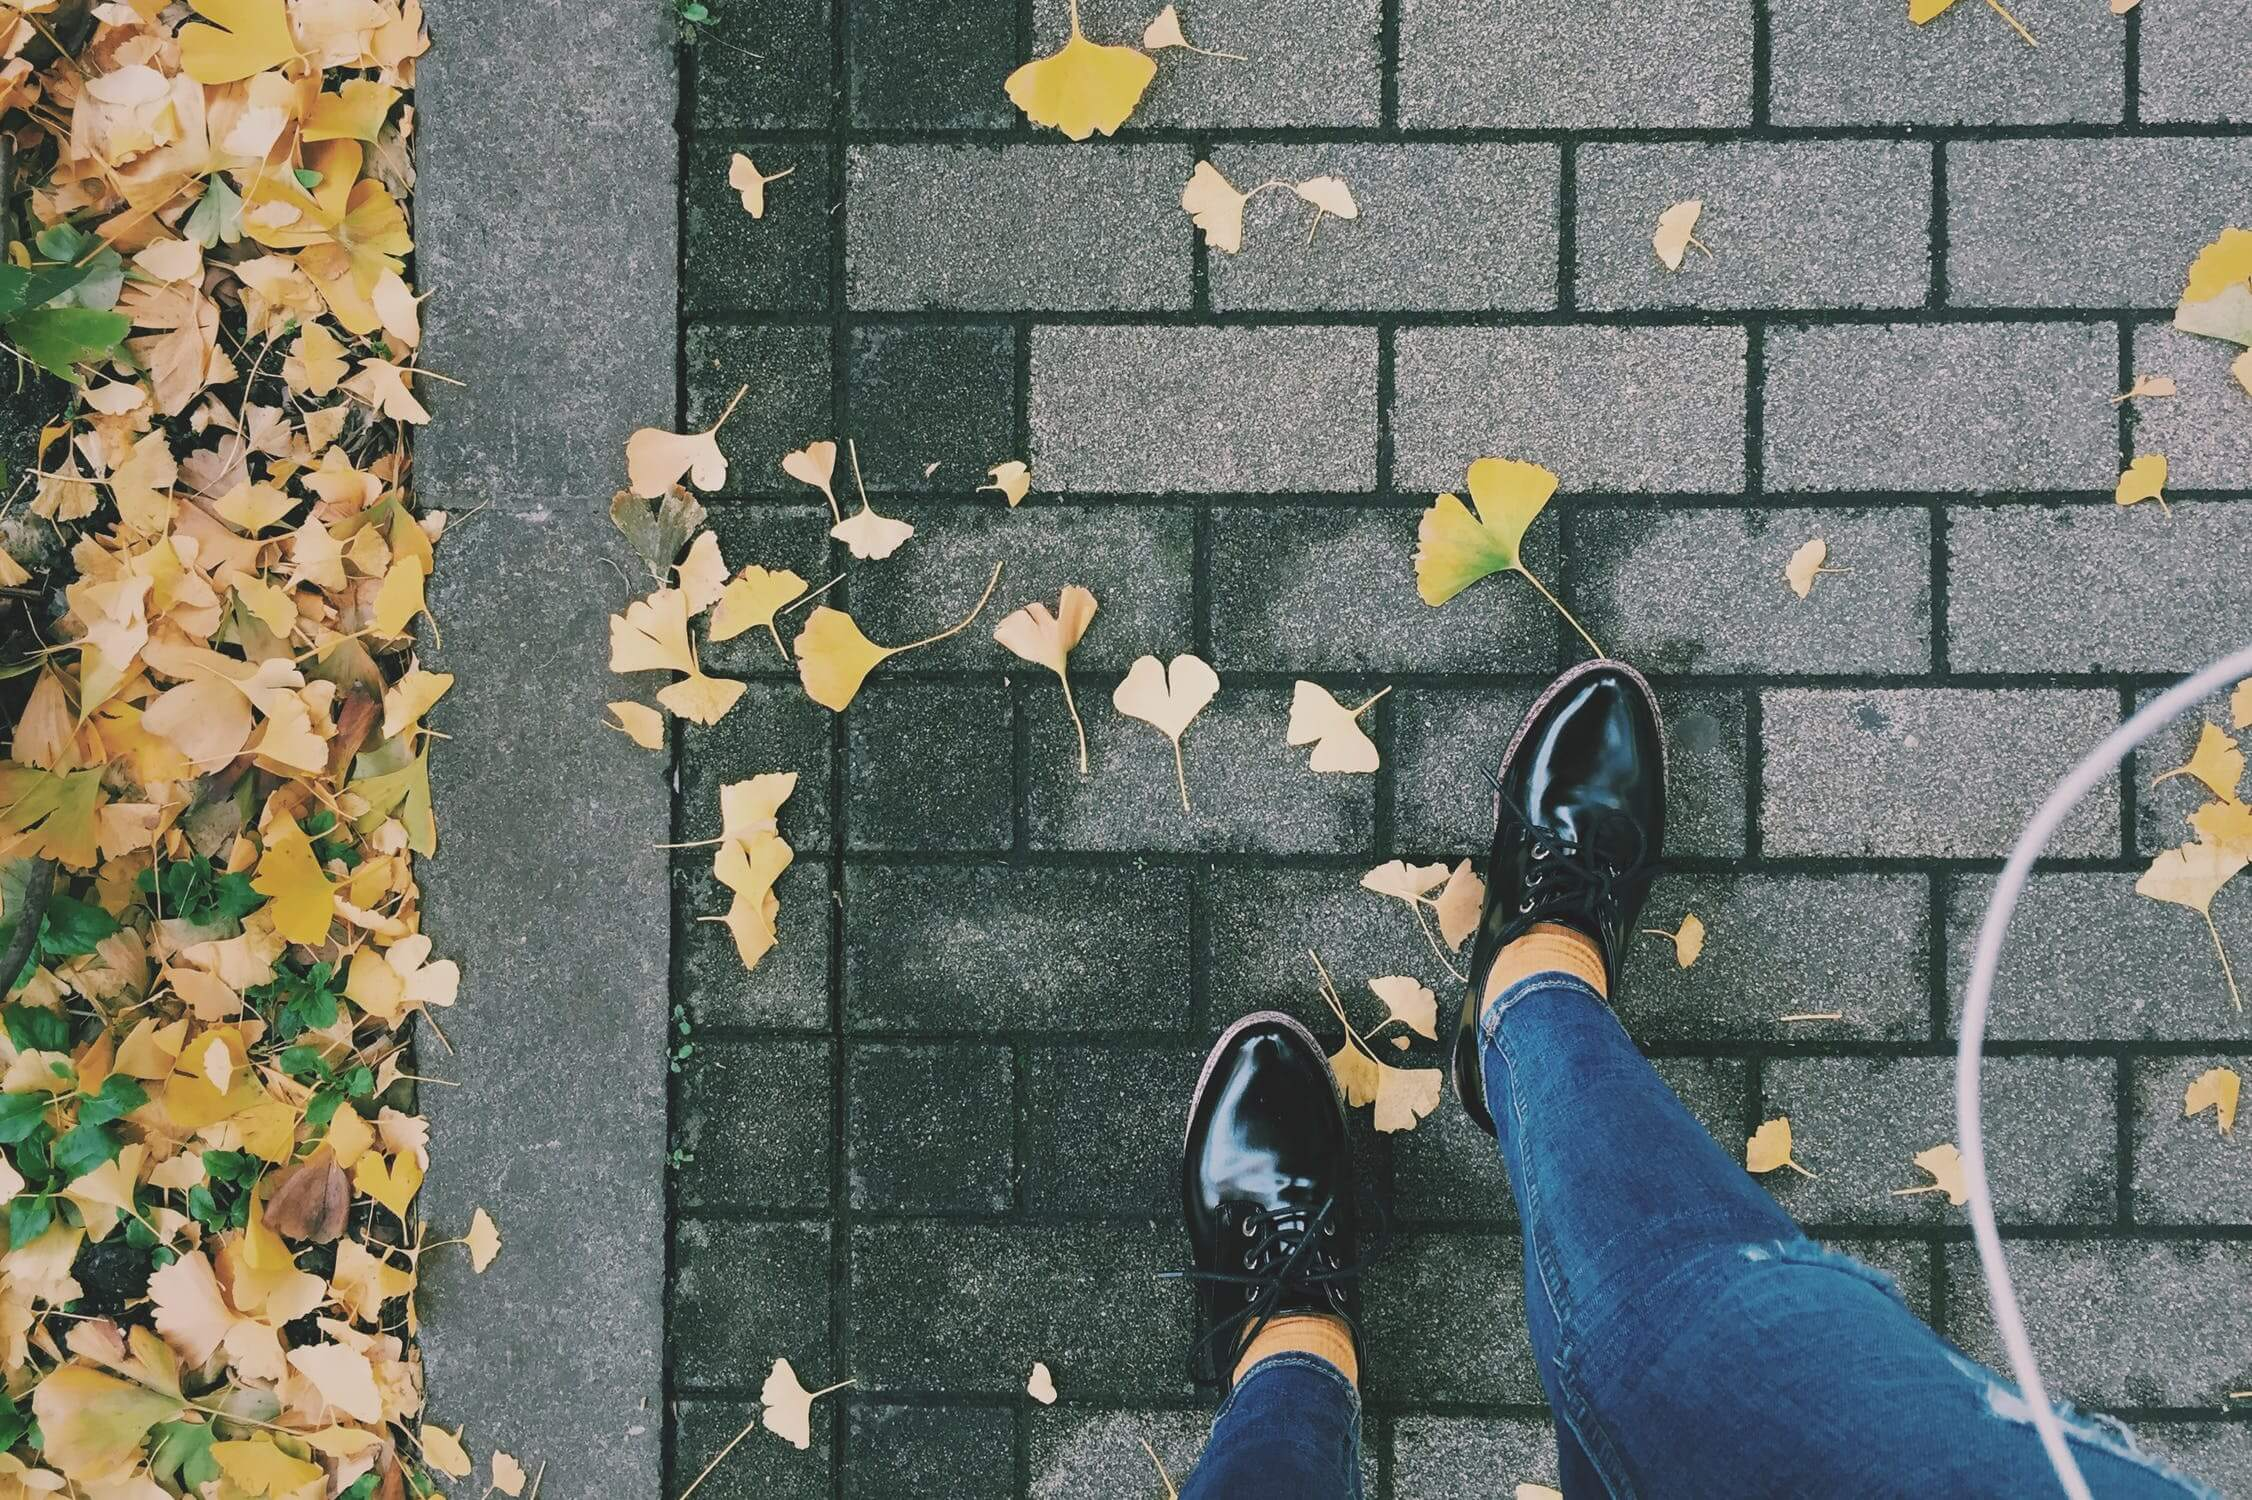 A pair of feet stand on concrete bricks, with fallen leaves scattered around.